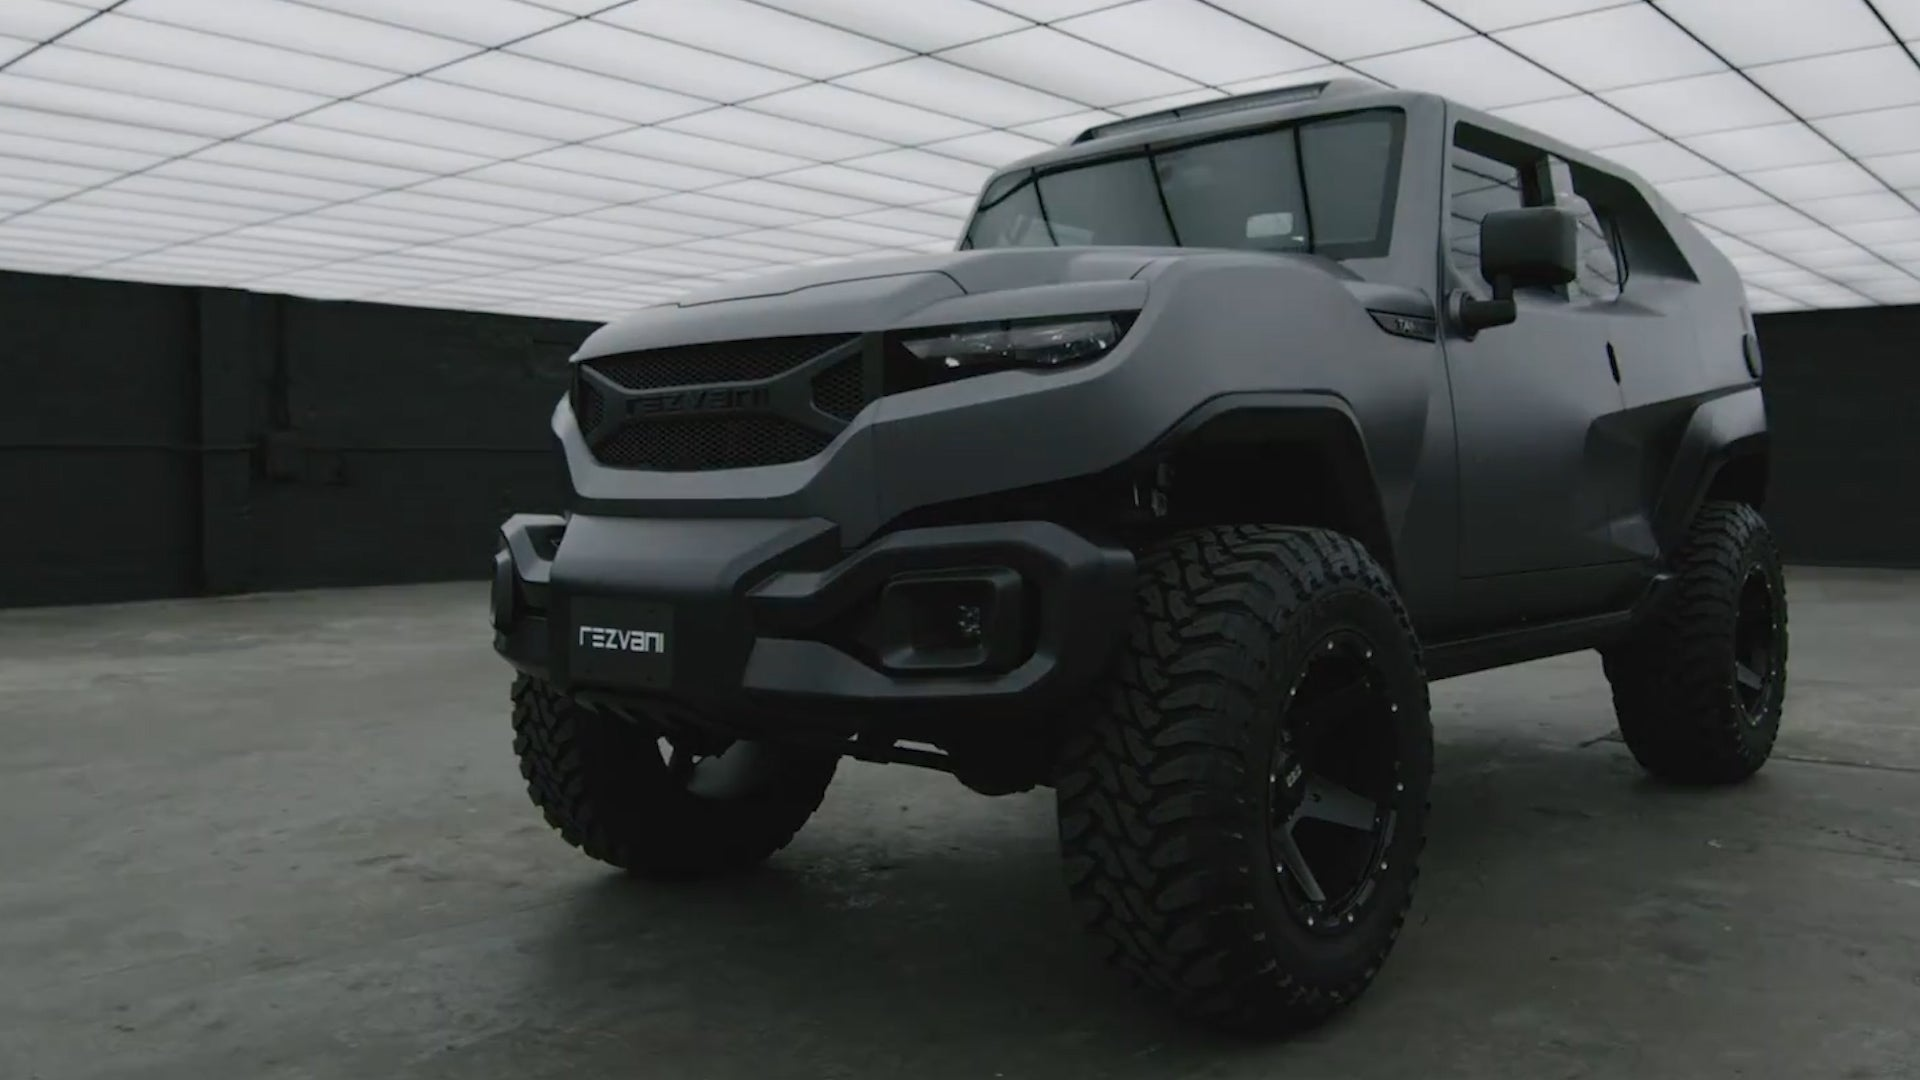 rezvani designed new tactical urban vehicle